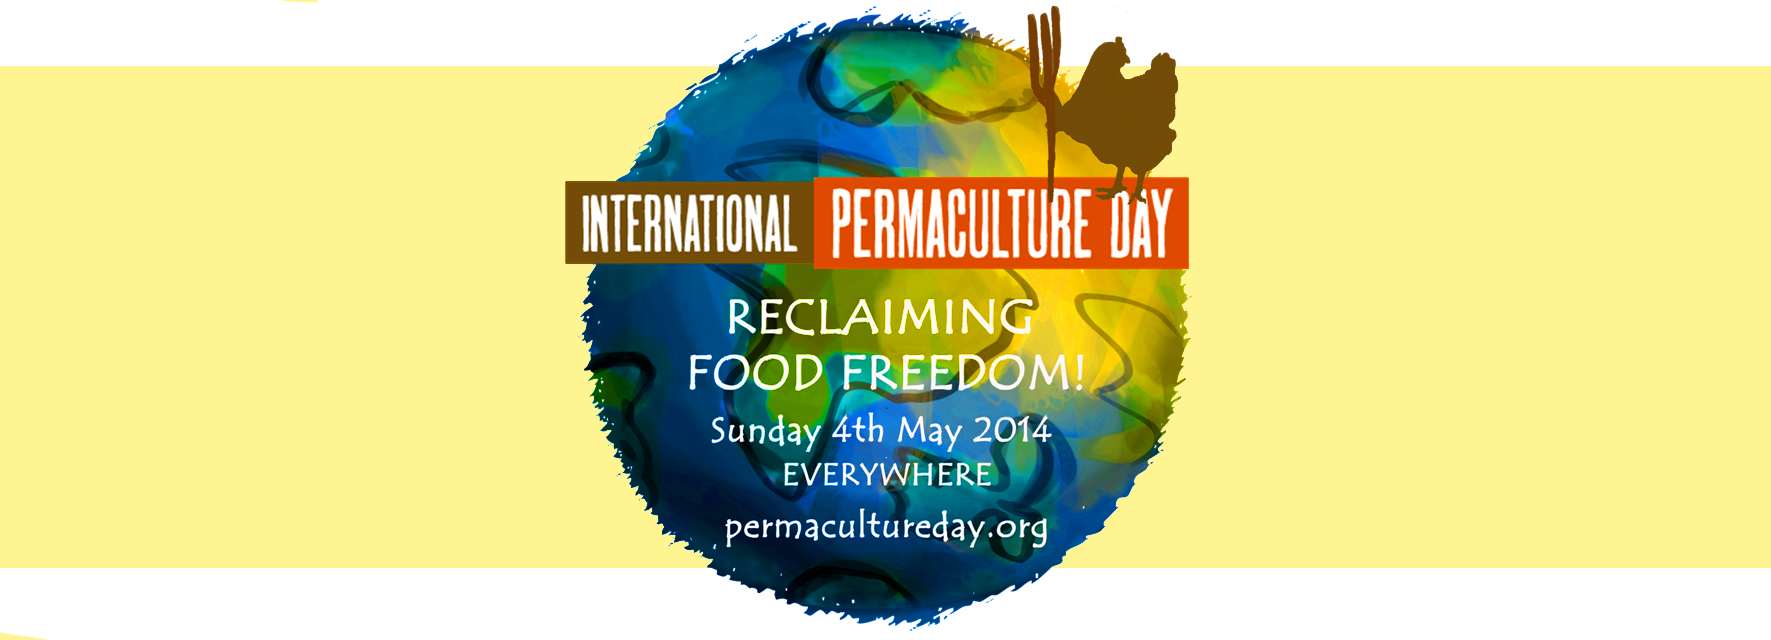 Reclaiming-Food-Freedom-politicafemminile